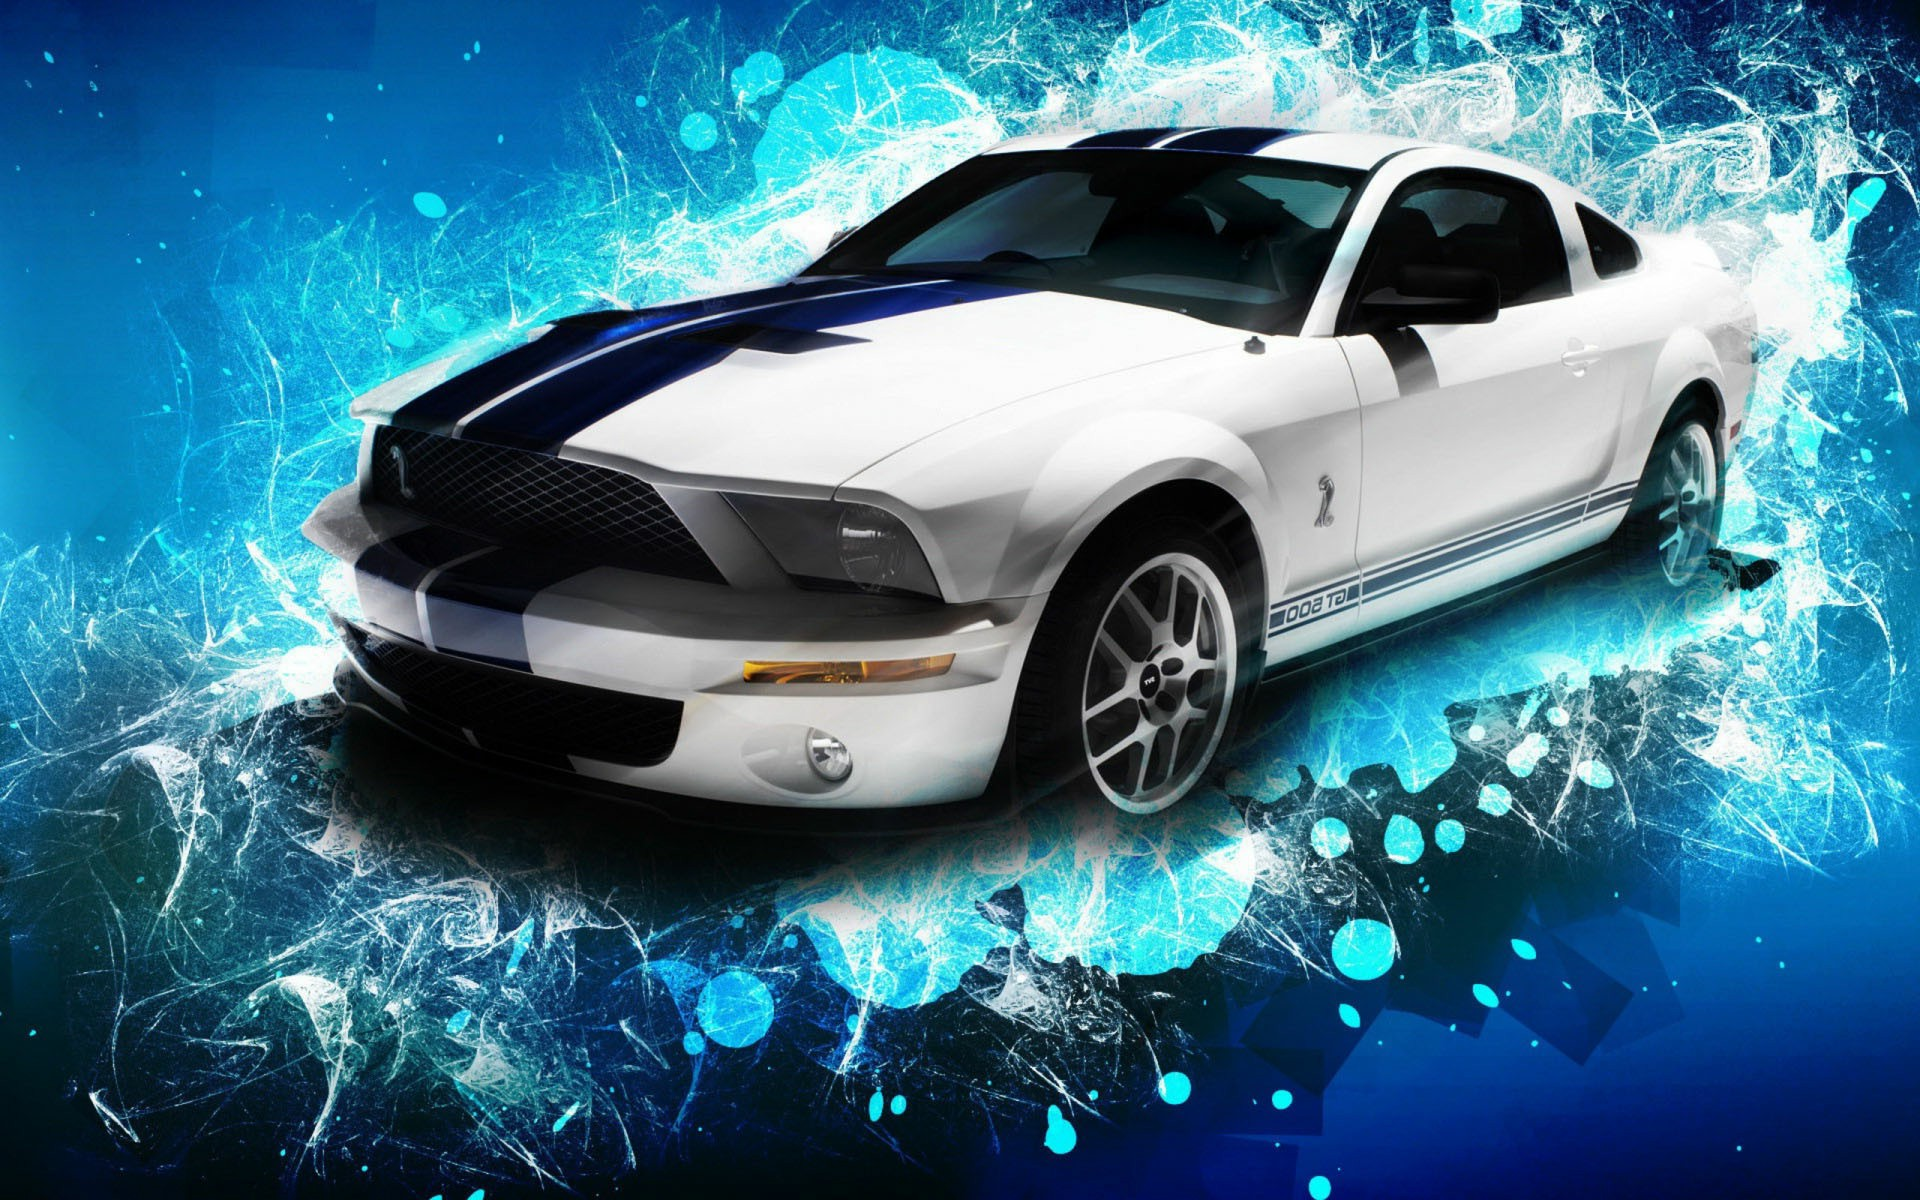 3d Car Desktop Backgrounds Vinny Oleo Vegetal Info